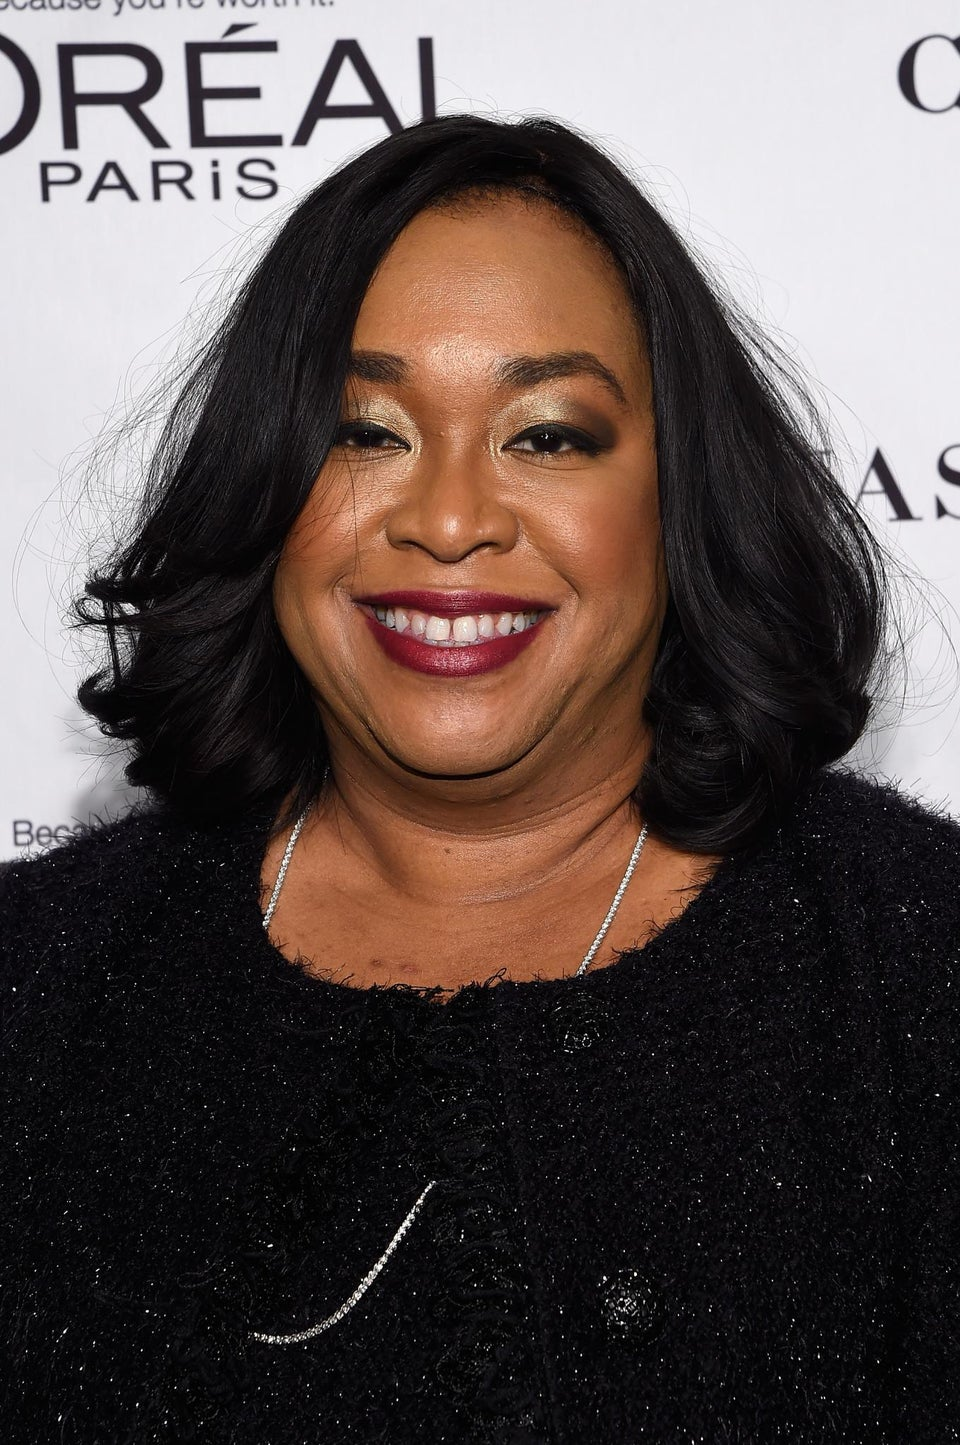 Shonda Rhimes to Receive Award for Television Writing Achievement